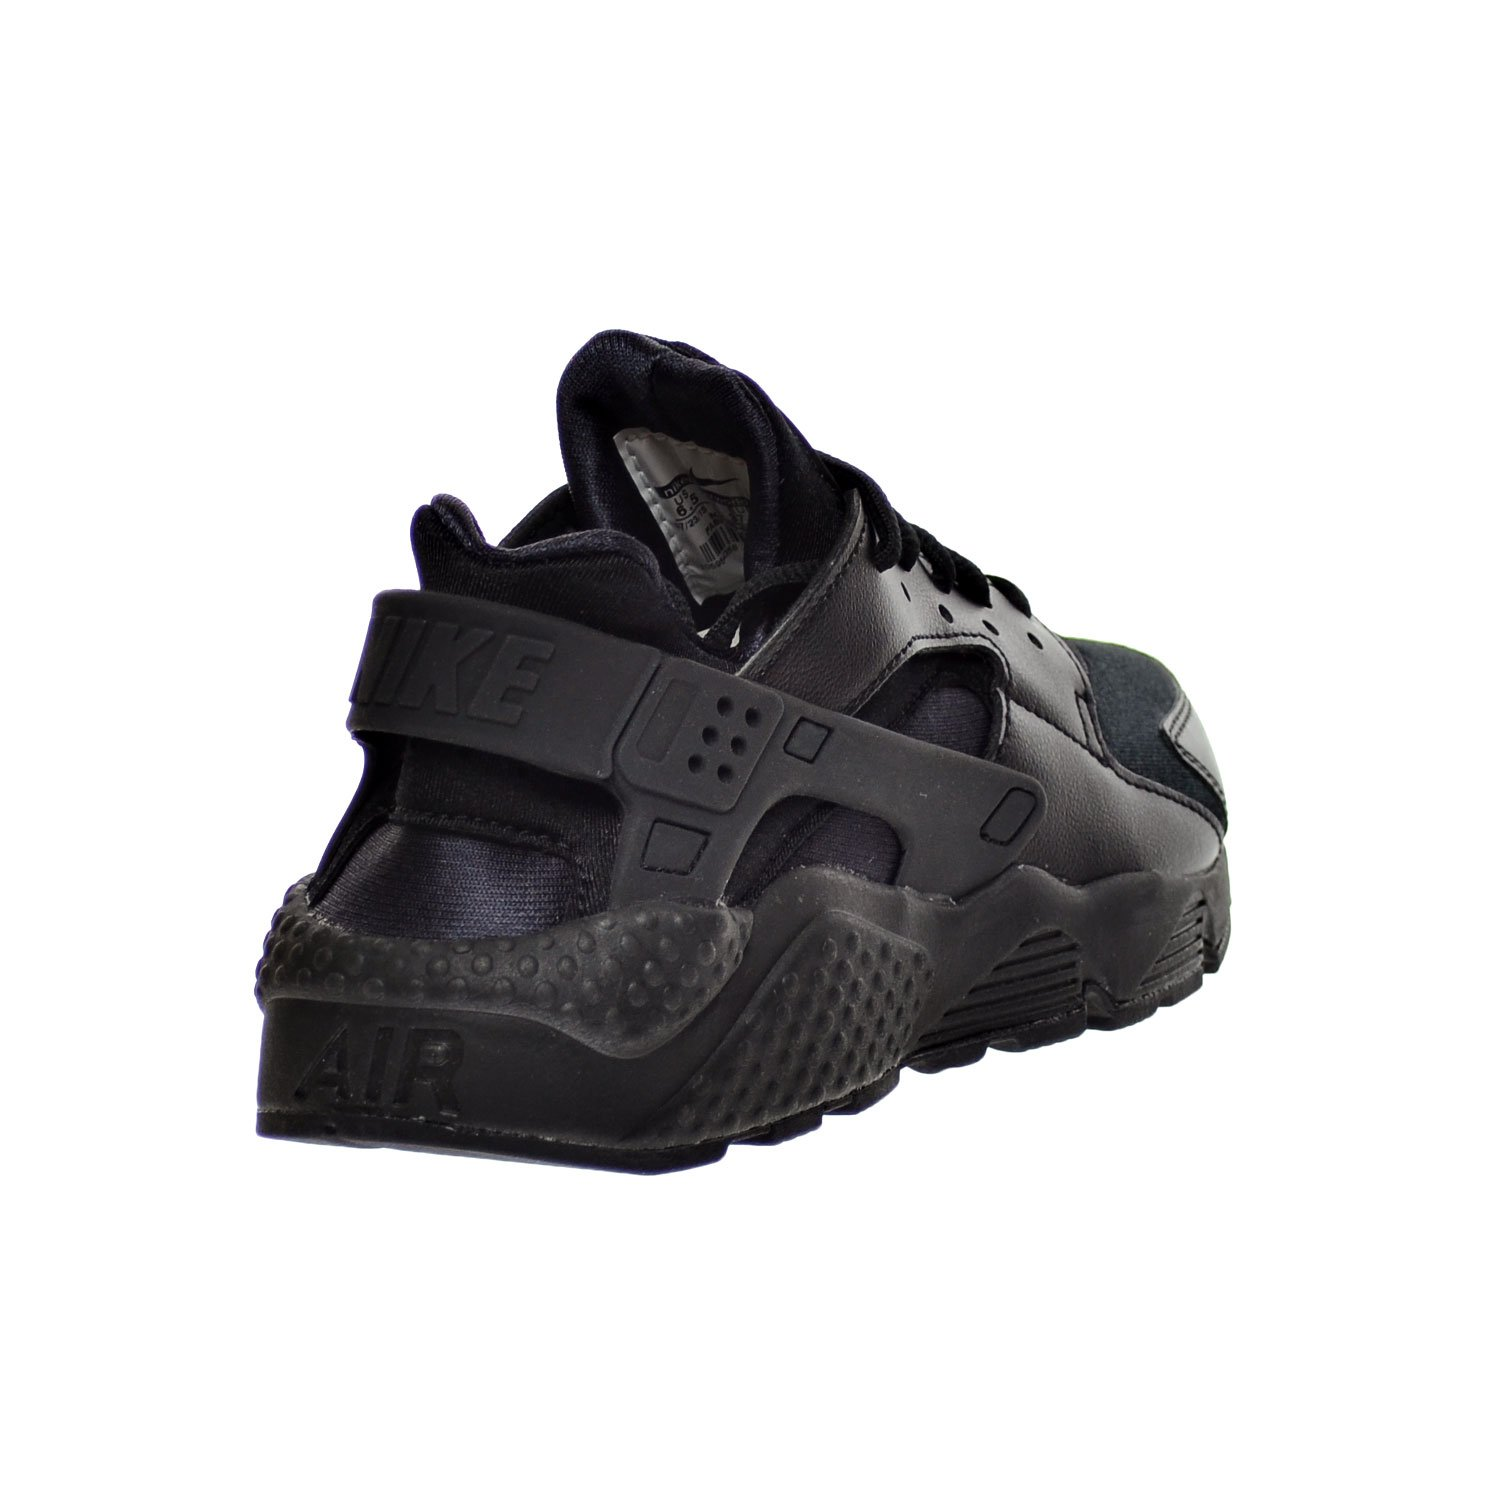 a0ac77460acd6 Nike Women s WMNS Air Huarache Run Gymnastics Shoes